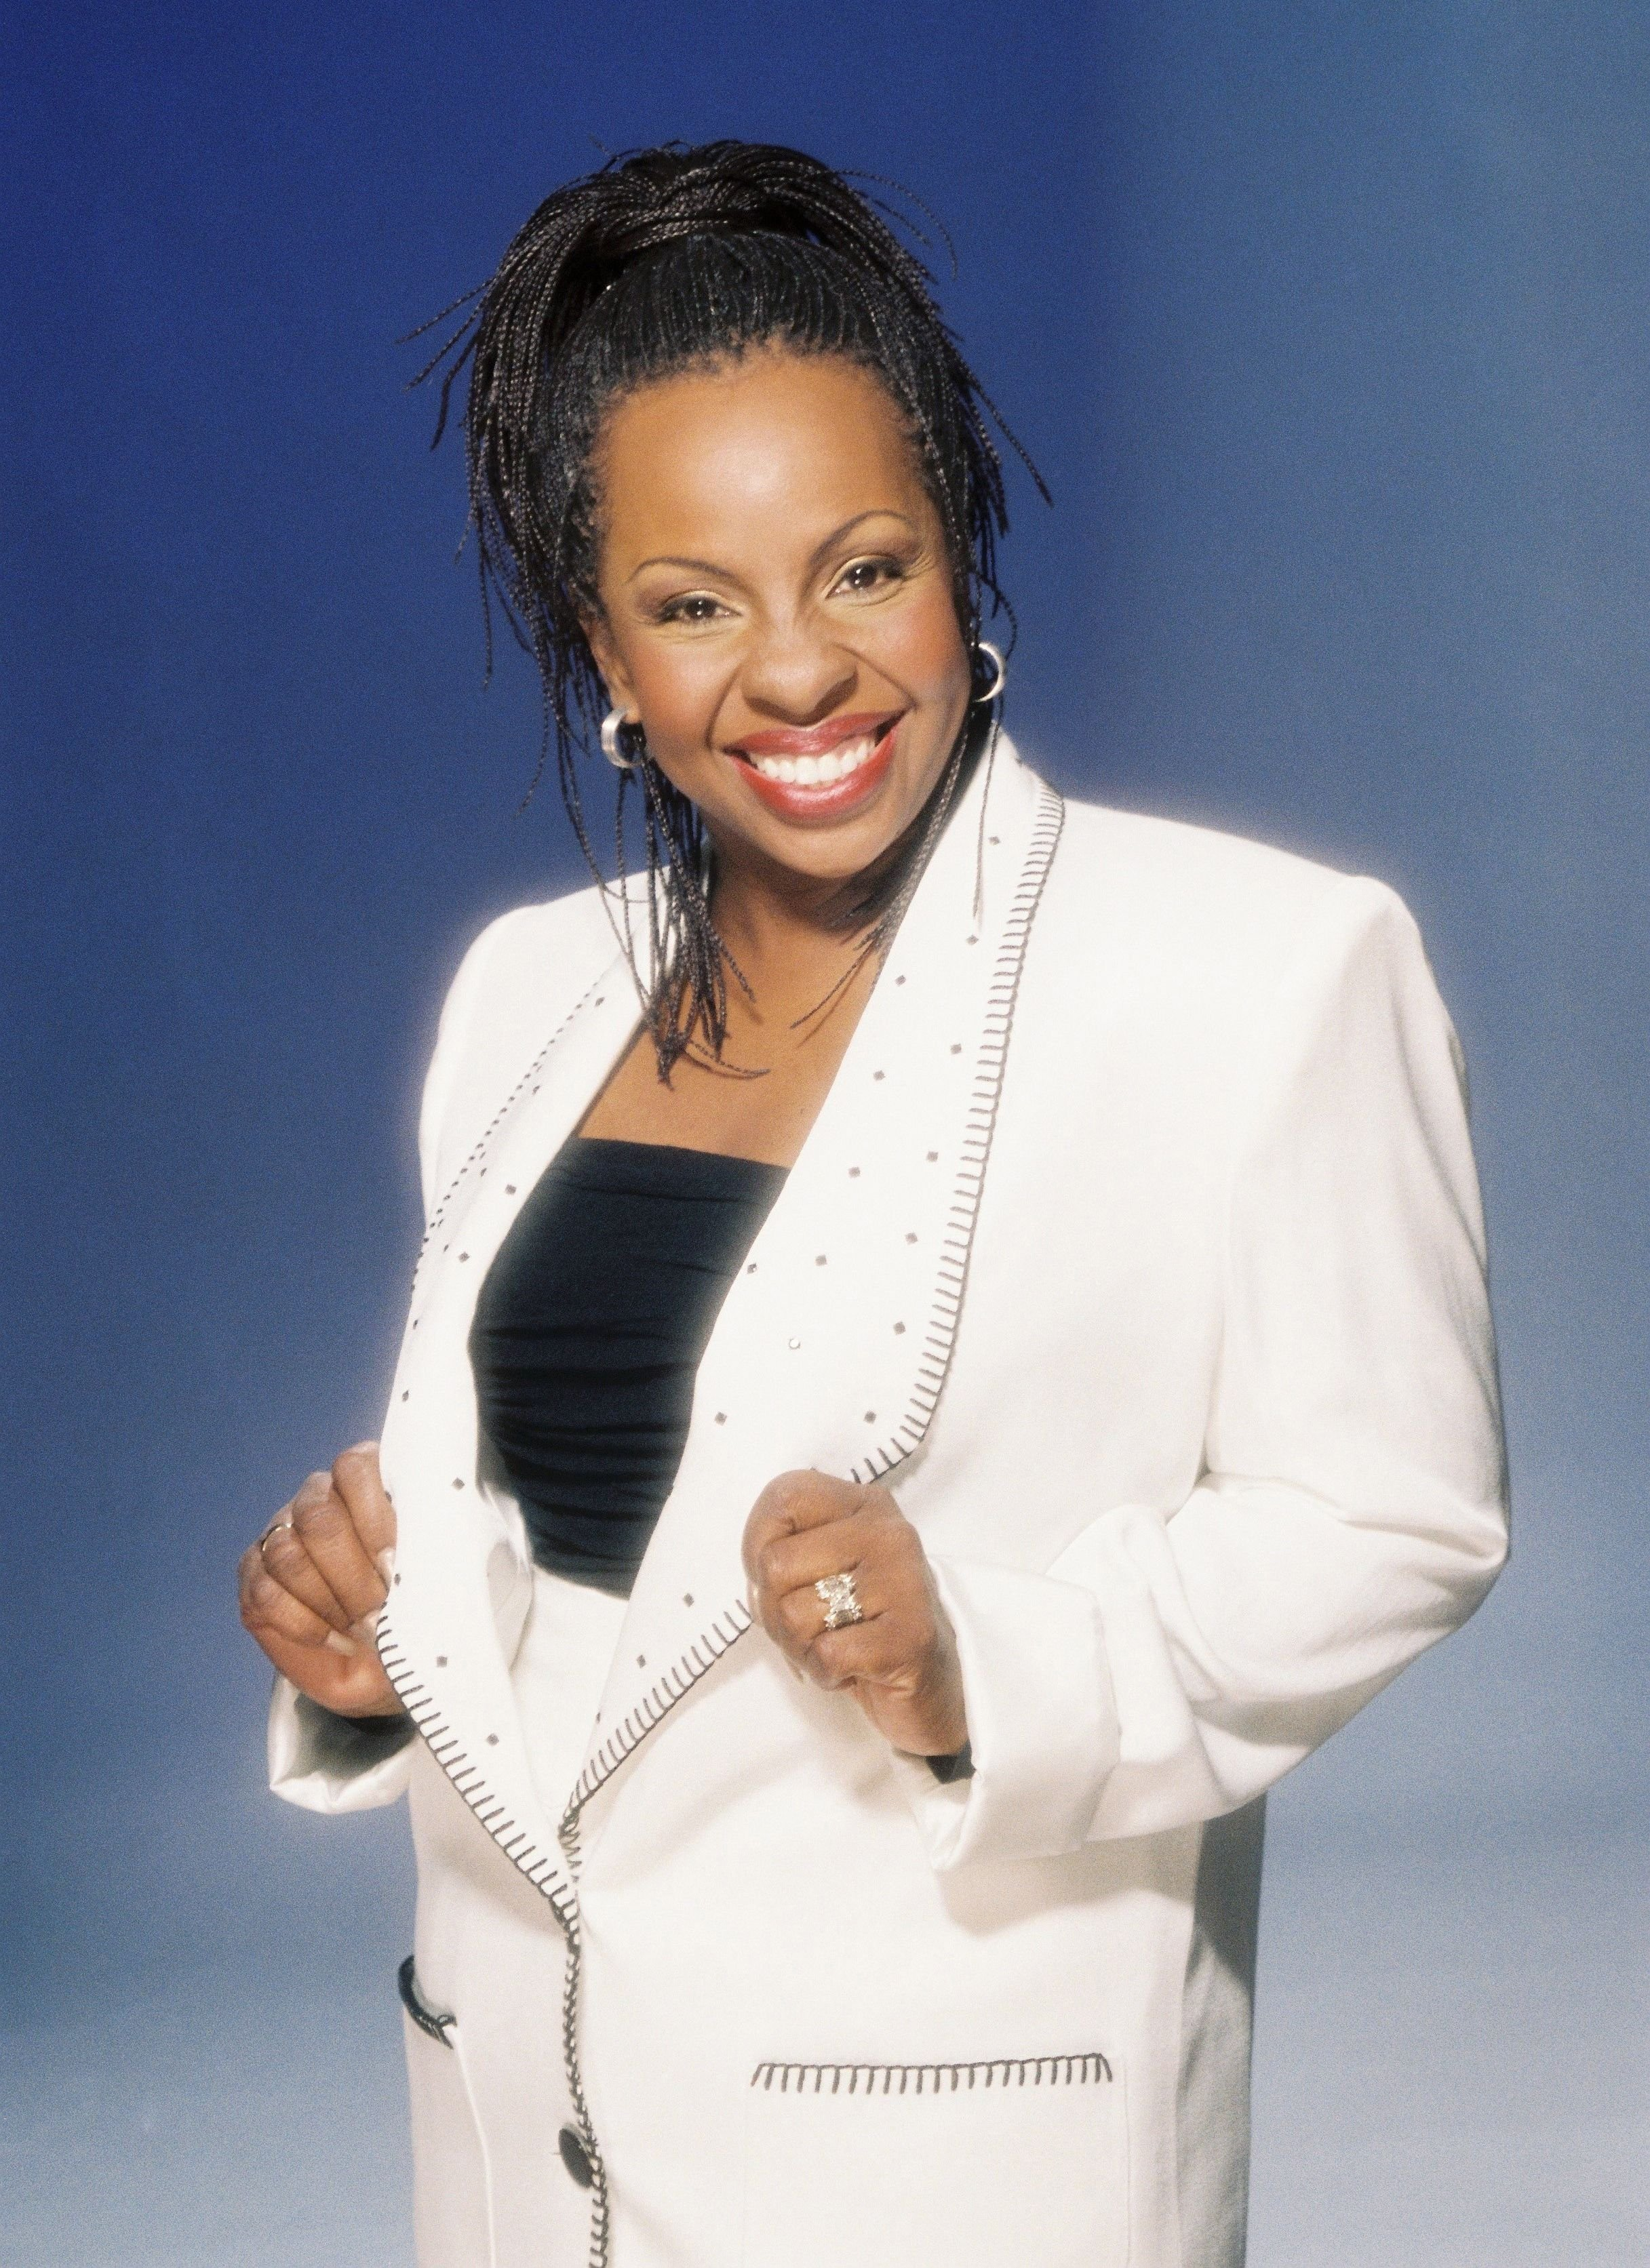 Gladys Knight smiles for a portrait in 1996 in Los Angeles, California. | Source: Getty Images